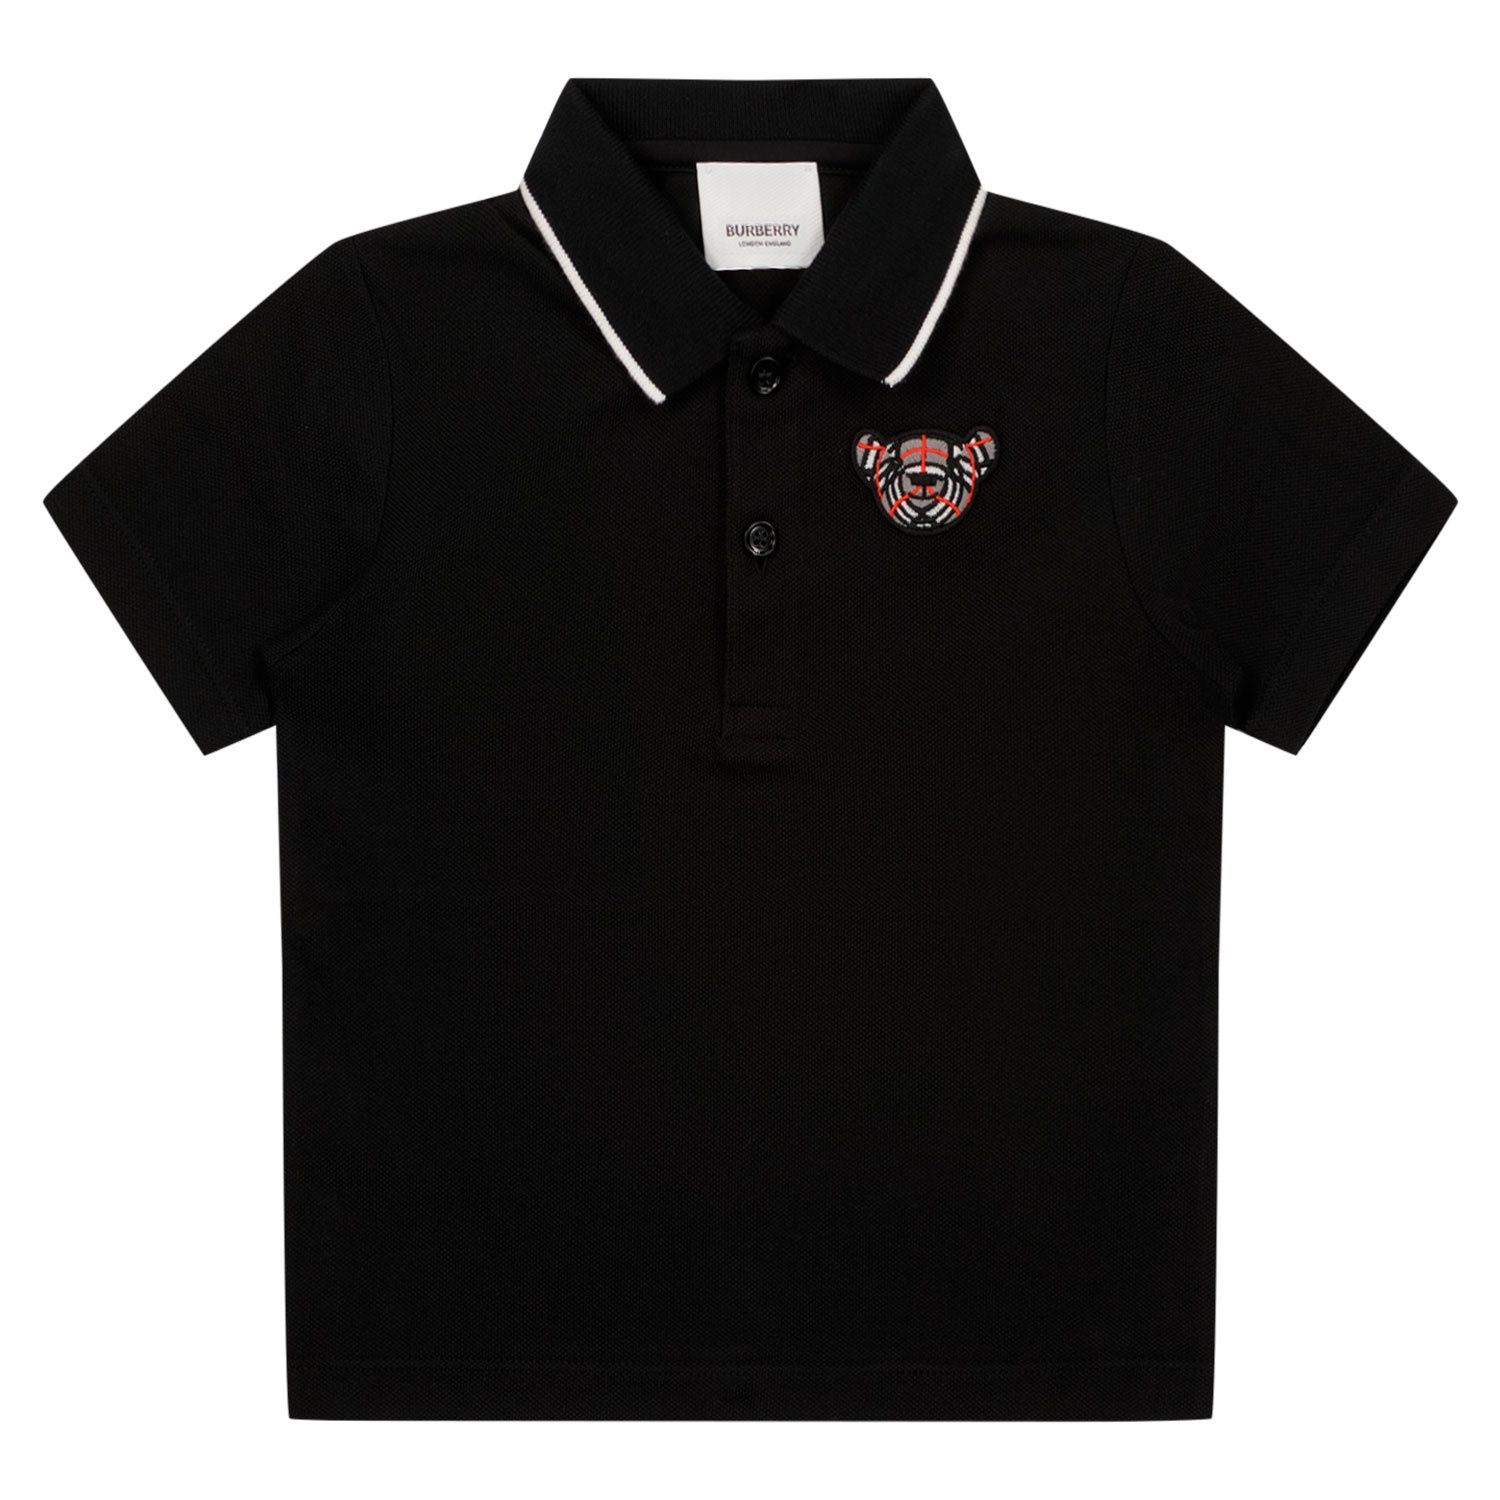 Picture of Burberry 8043934 baby poloshirt black